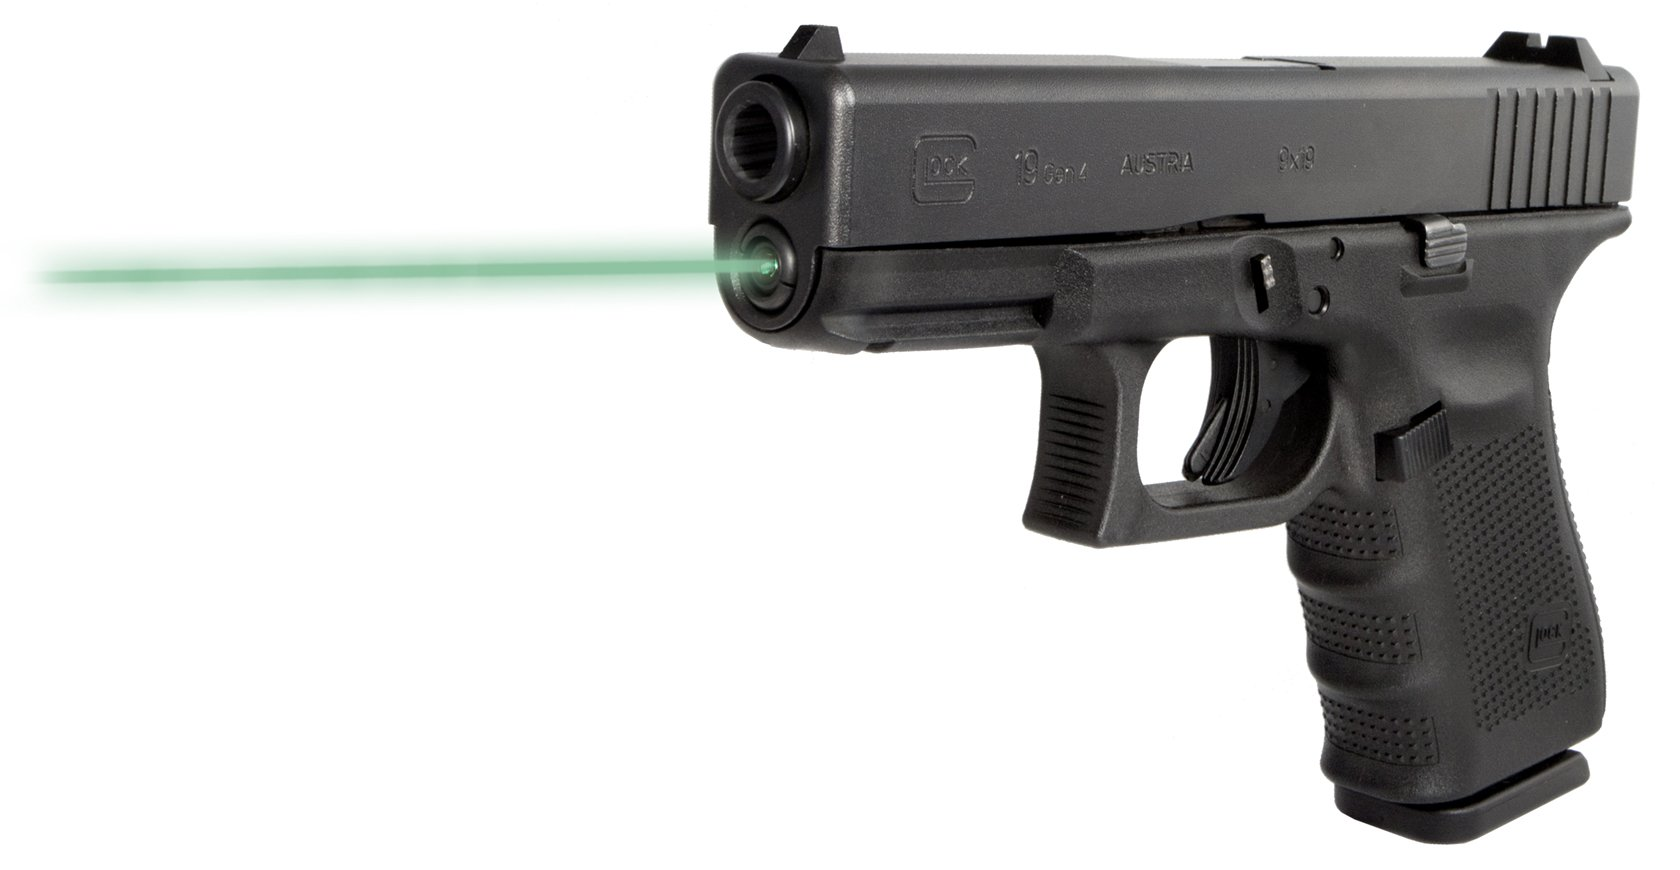 Guide Rod Laser (Green) For use in Glock 19 (Gen4)